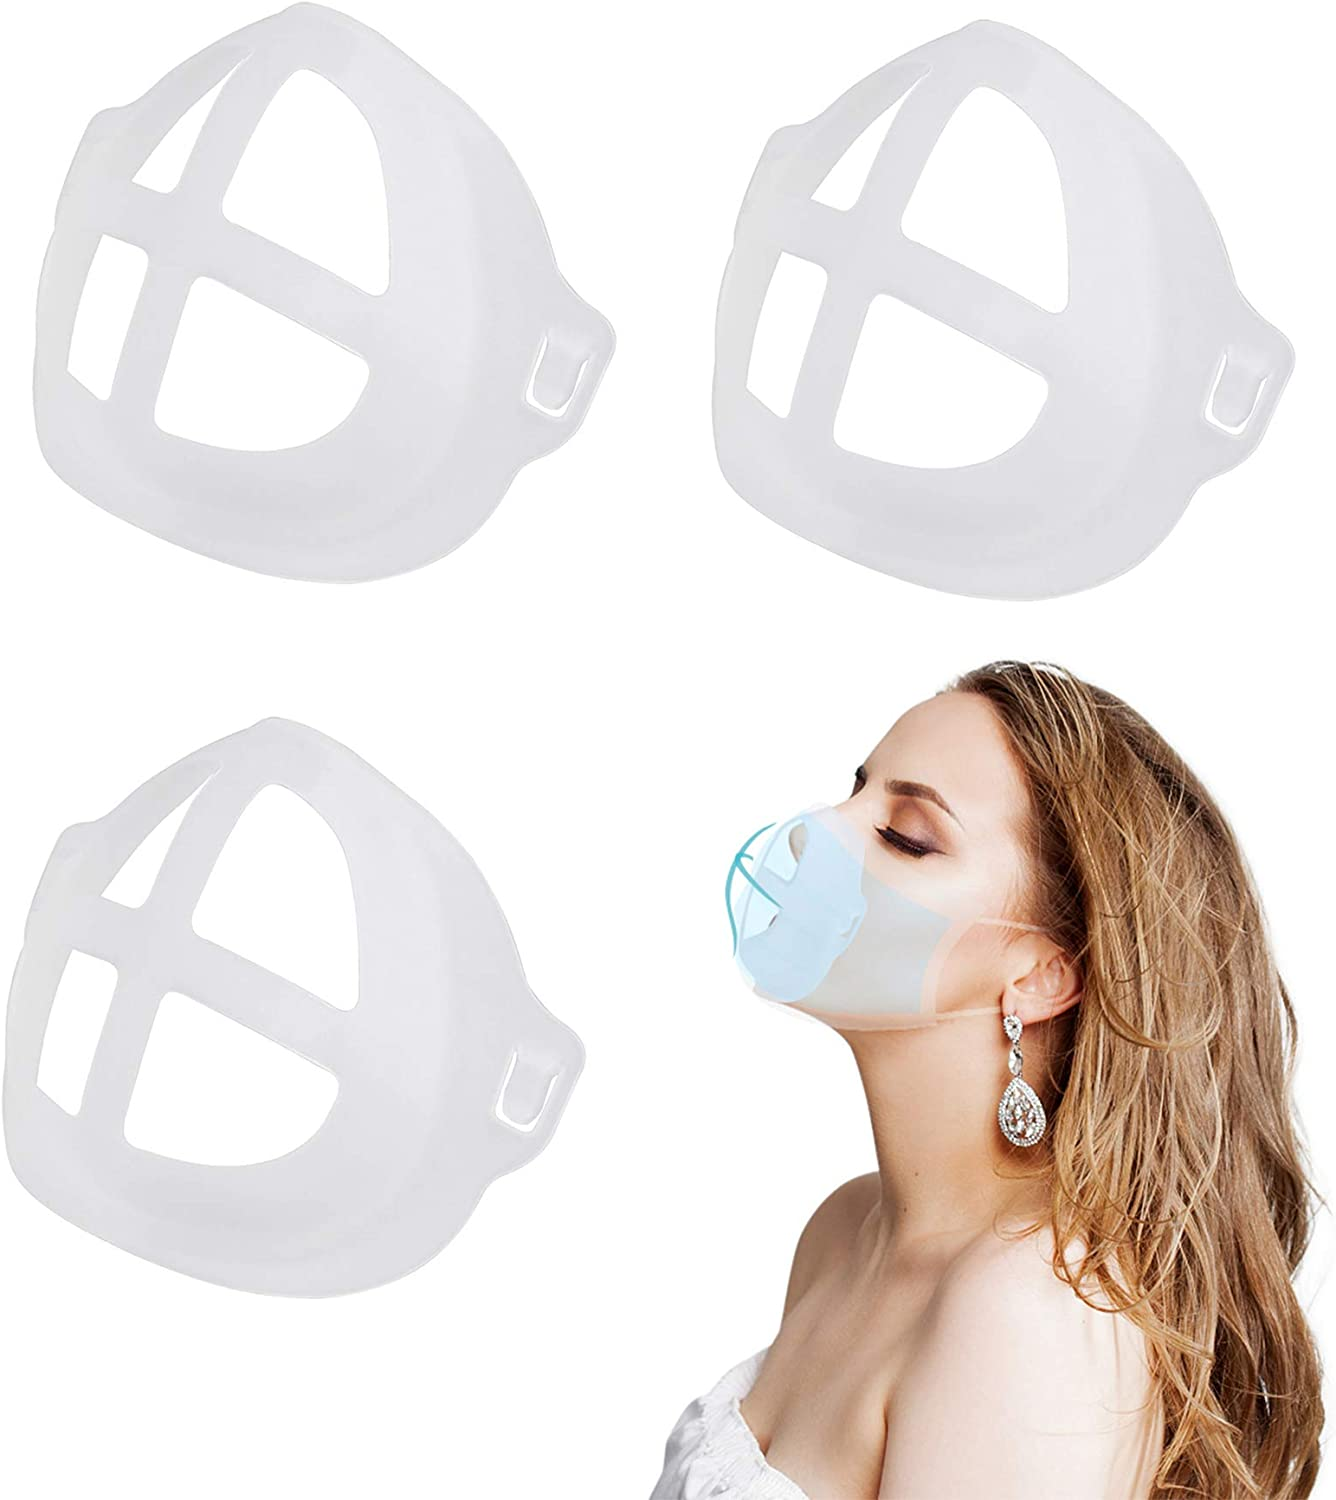 MIAODAM 3D Mask Bracket Face Breath OFFer Ranking TOP1 Frame Support To Space